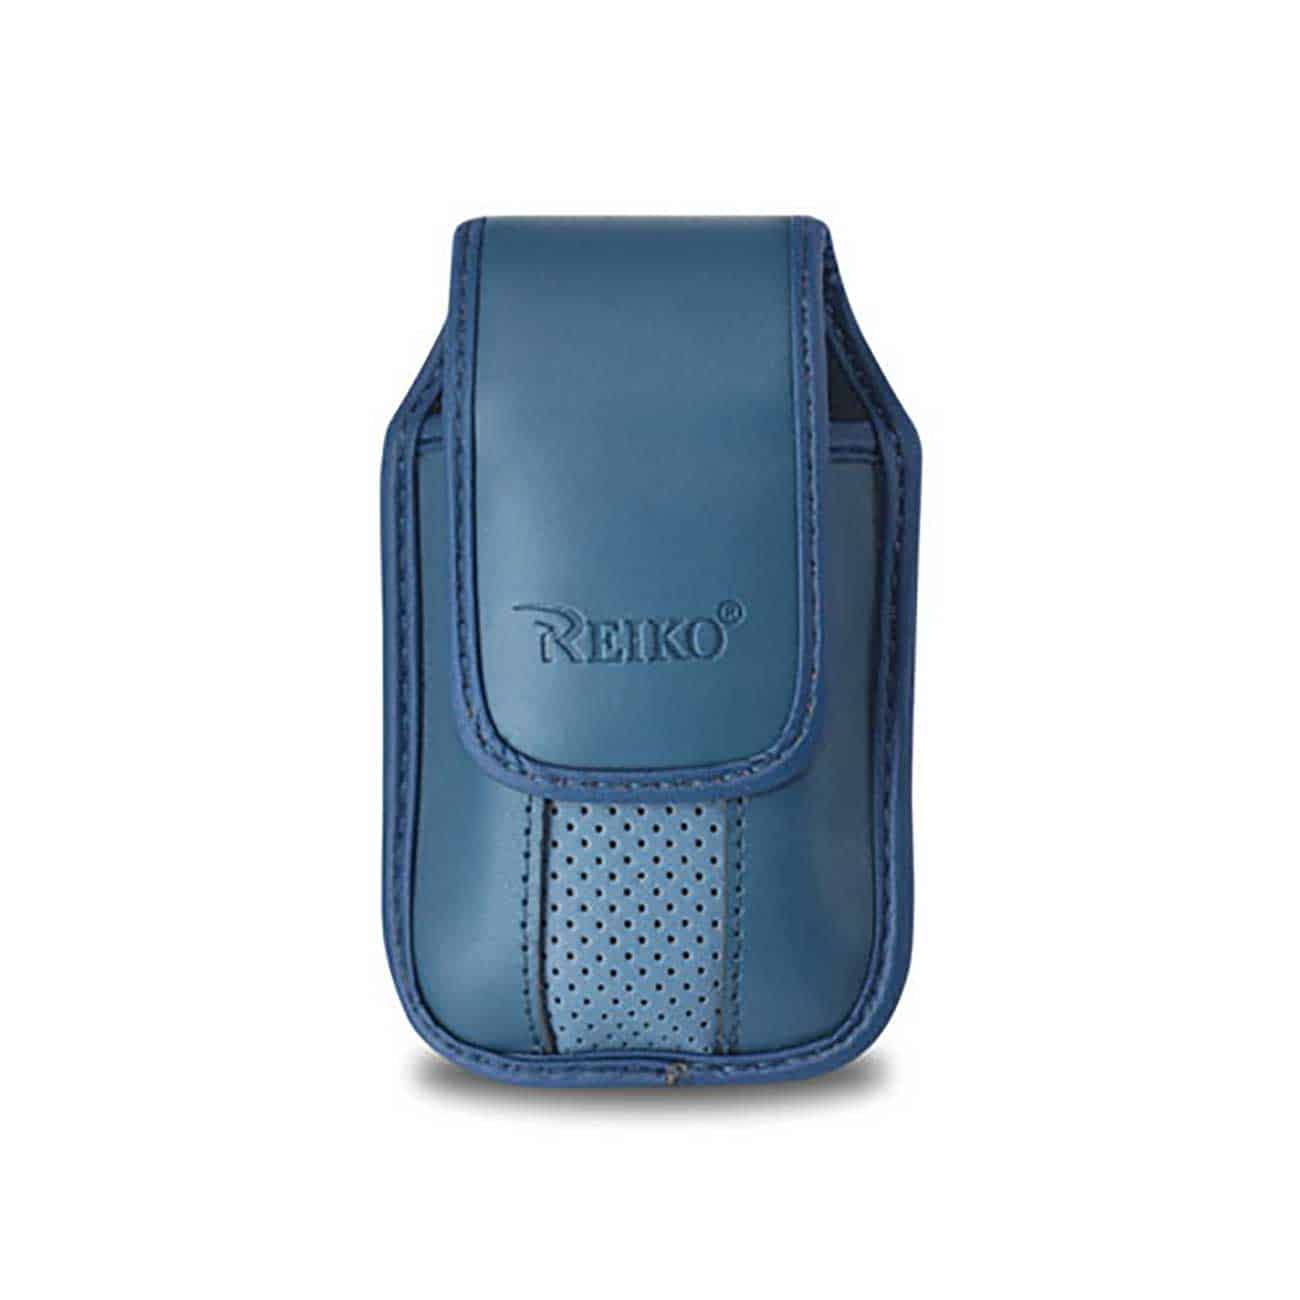 VERTICAL POUCH VP11A BLACKBERRY 8330 BLUE 4.3X2.4X0.6 INCHES